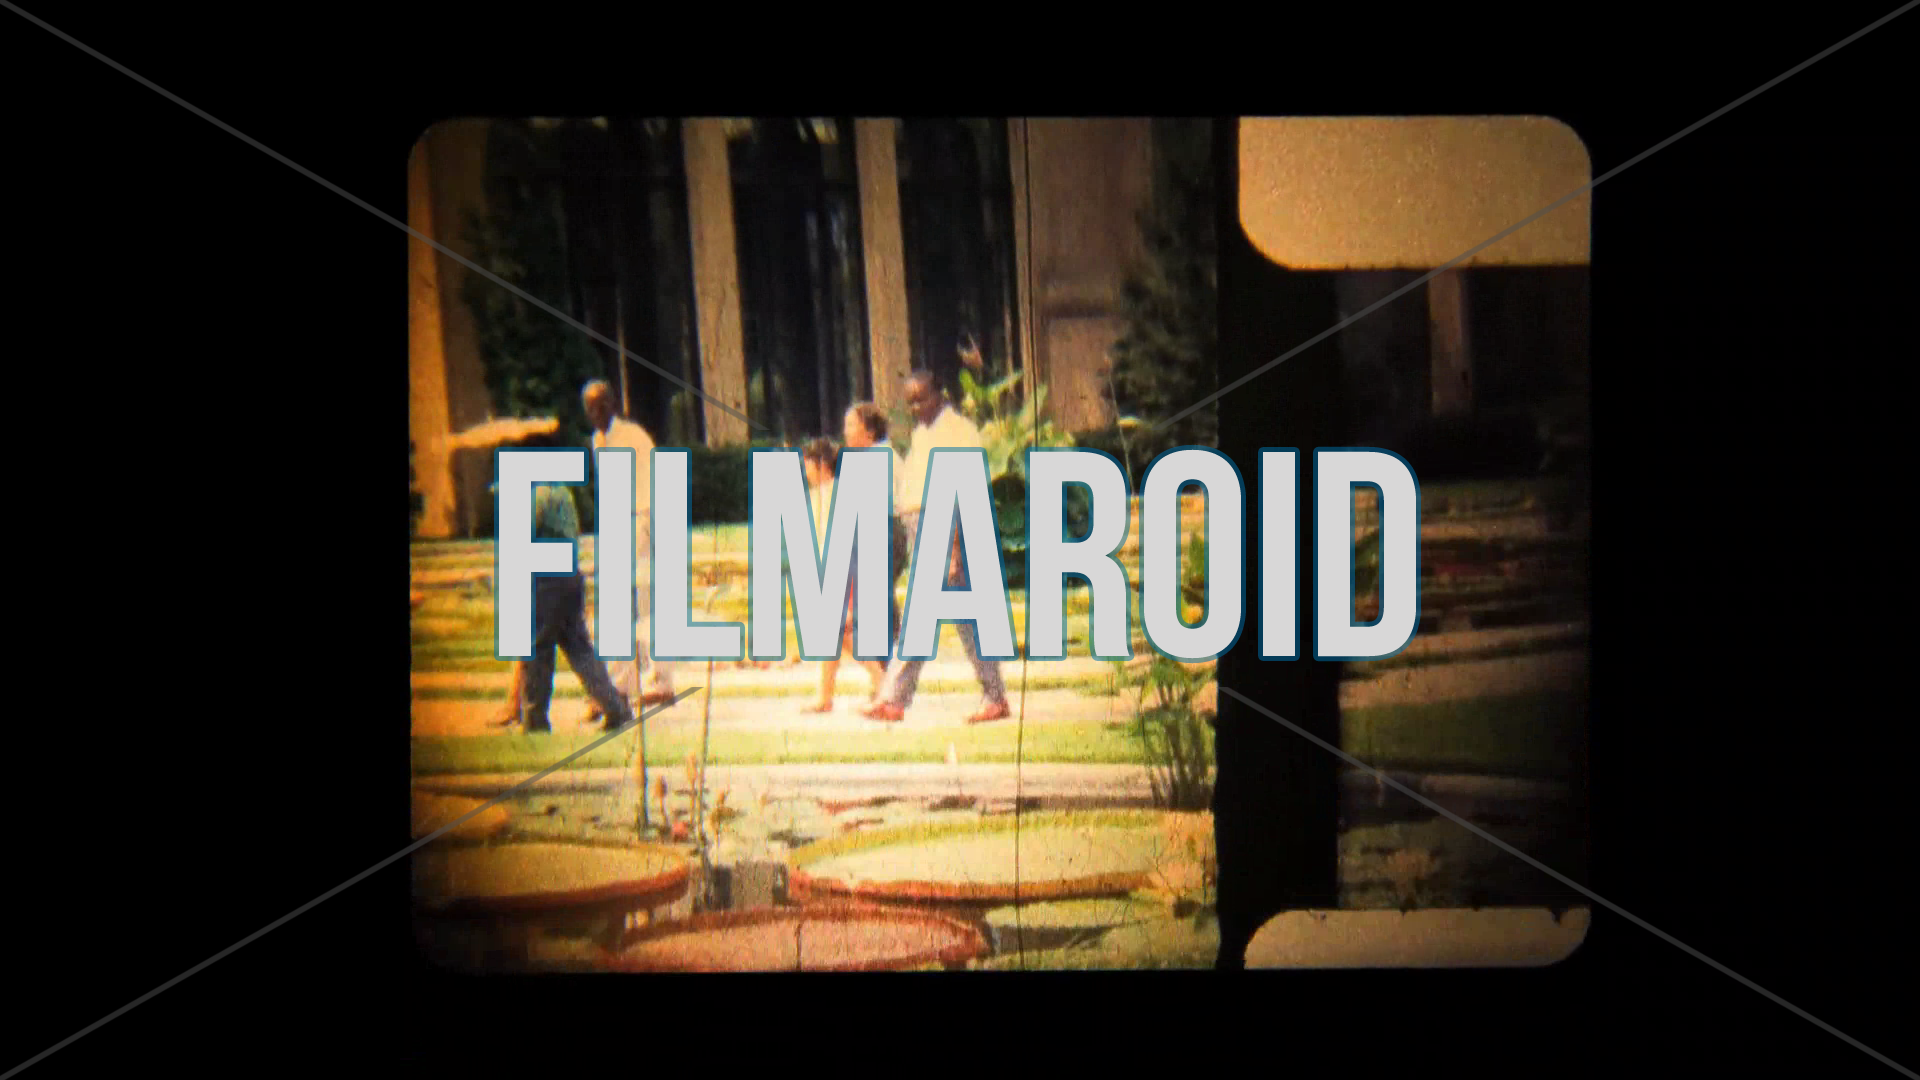 8mm footage of a 60s family walking through beautiful gardens with ponds and water lilies - Vintage 8mm footage of a 60s family walking across the beautiful and vibrant gardens with ponds and water lilies during one summer afternoon